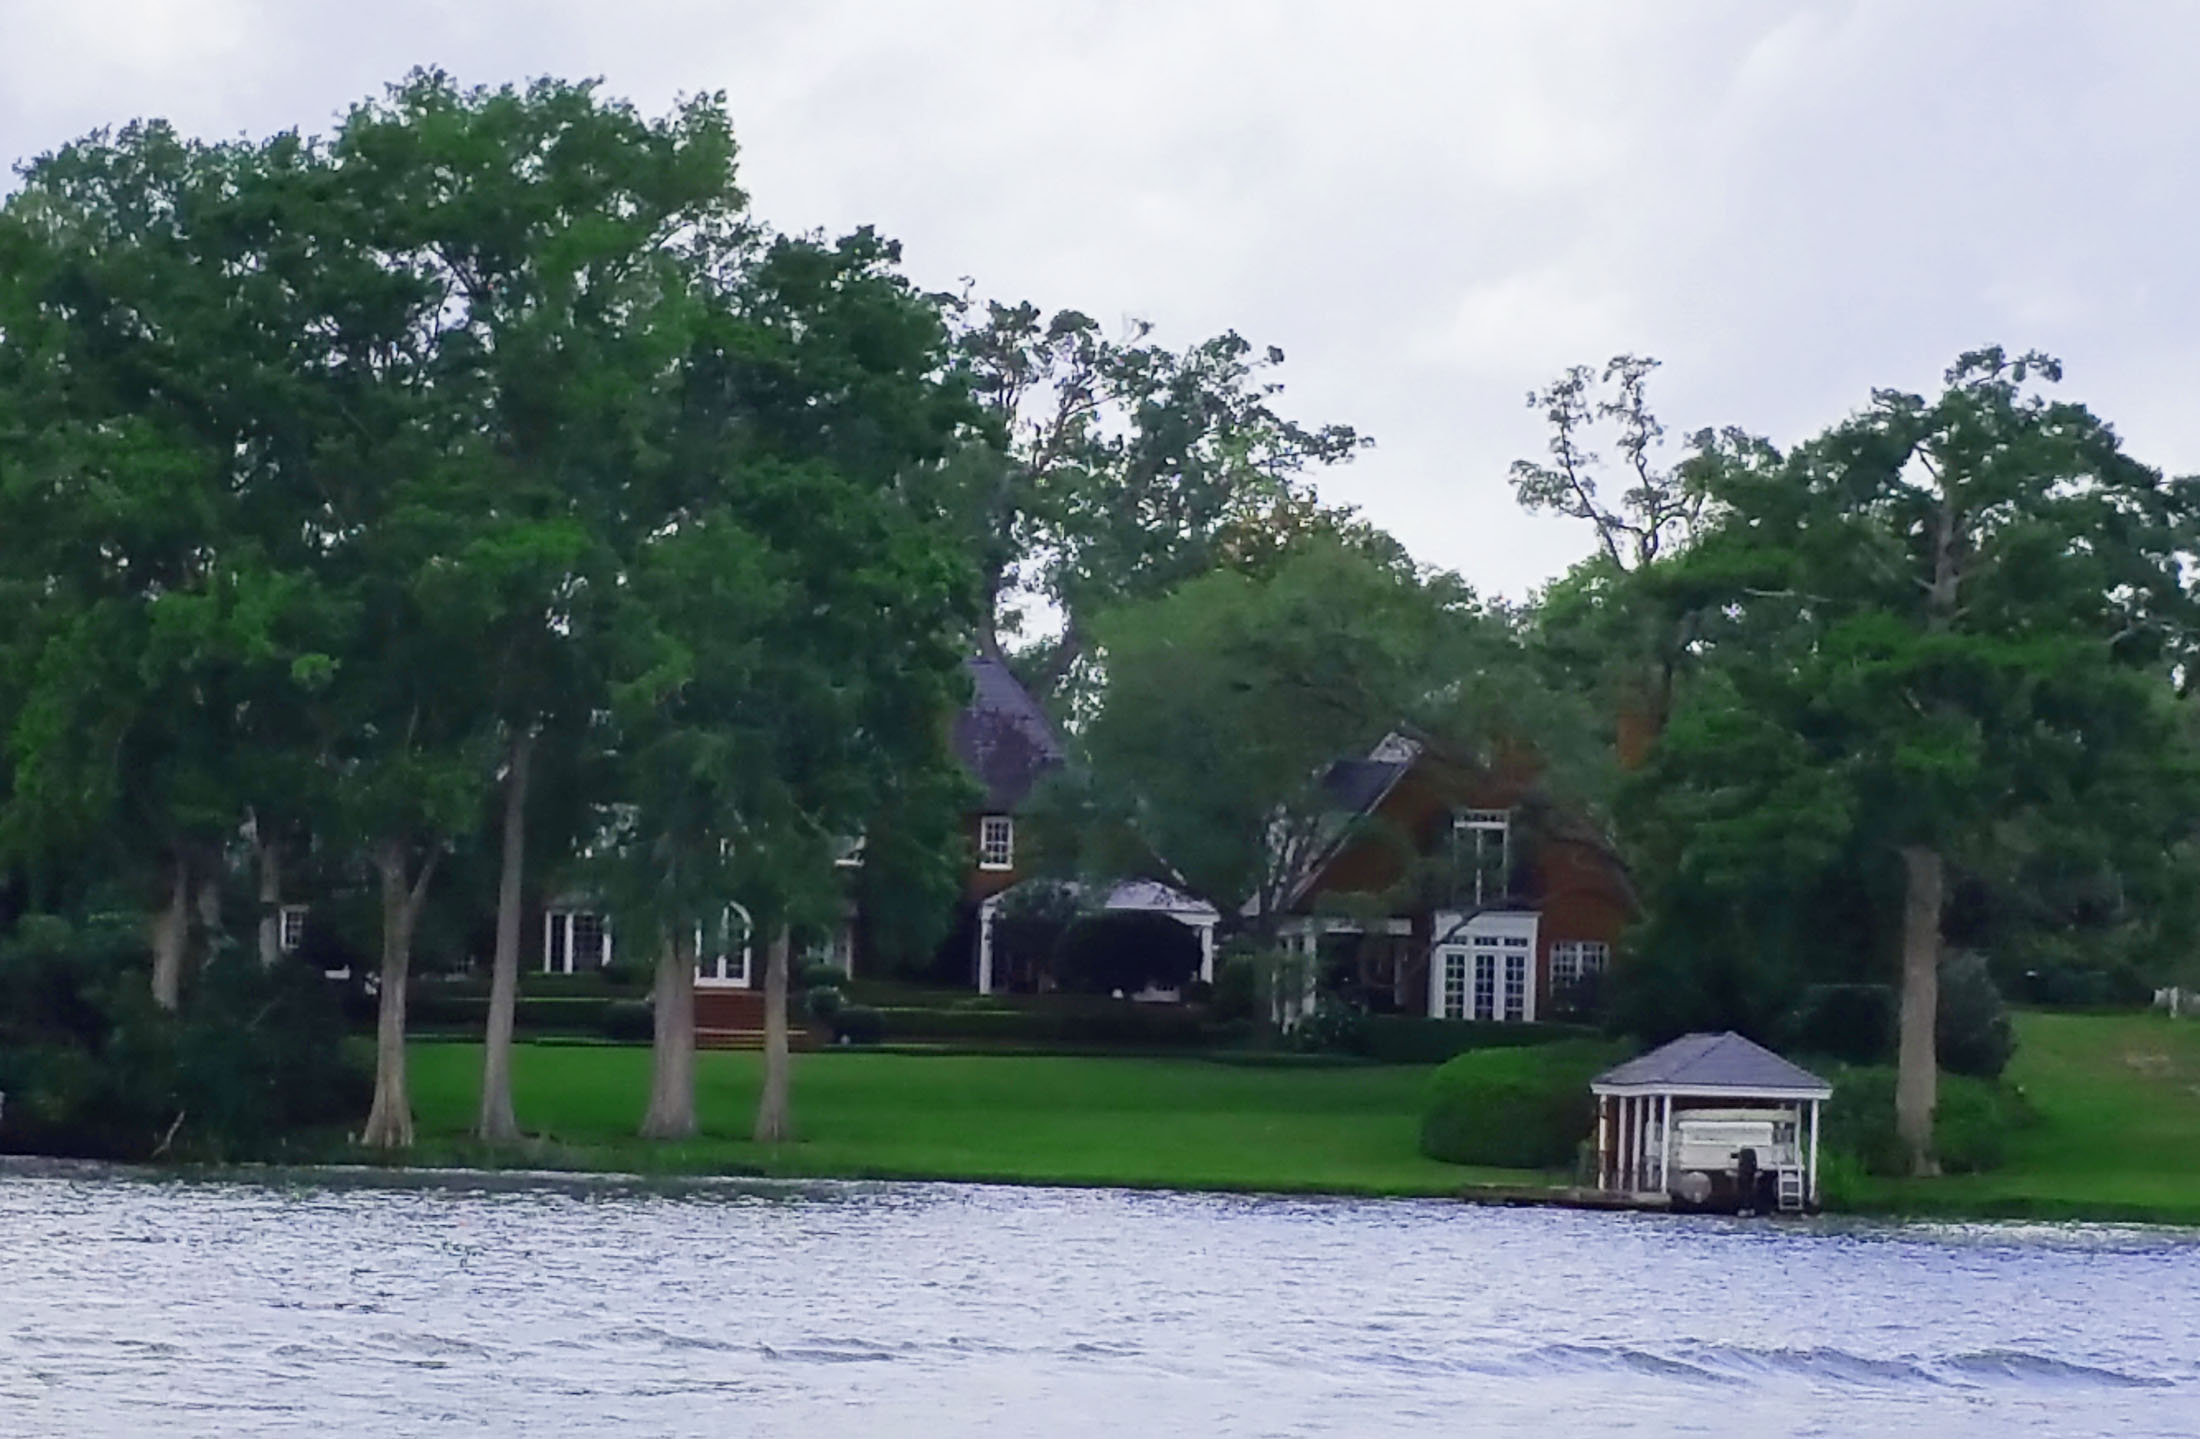 Winter Park S Scenic Boat Tour Full Of Surprises As Oldest Orlando Attraction Craigslegz Travels